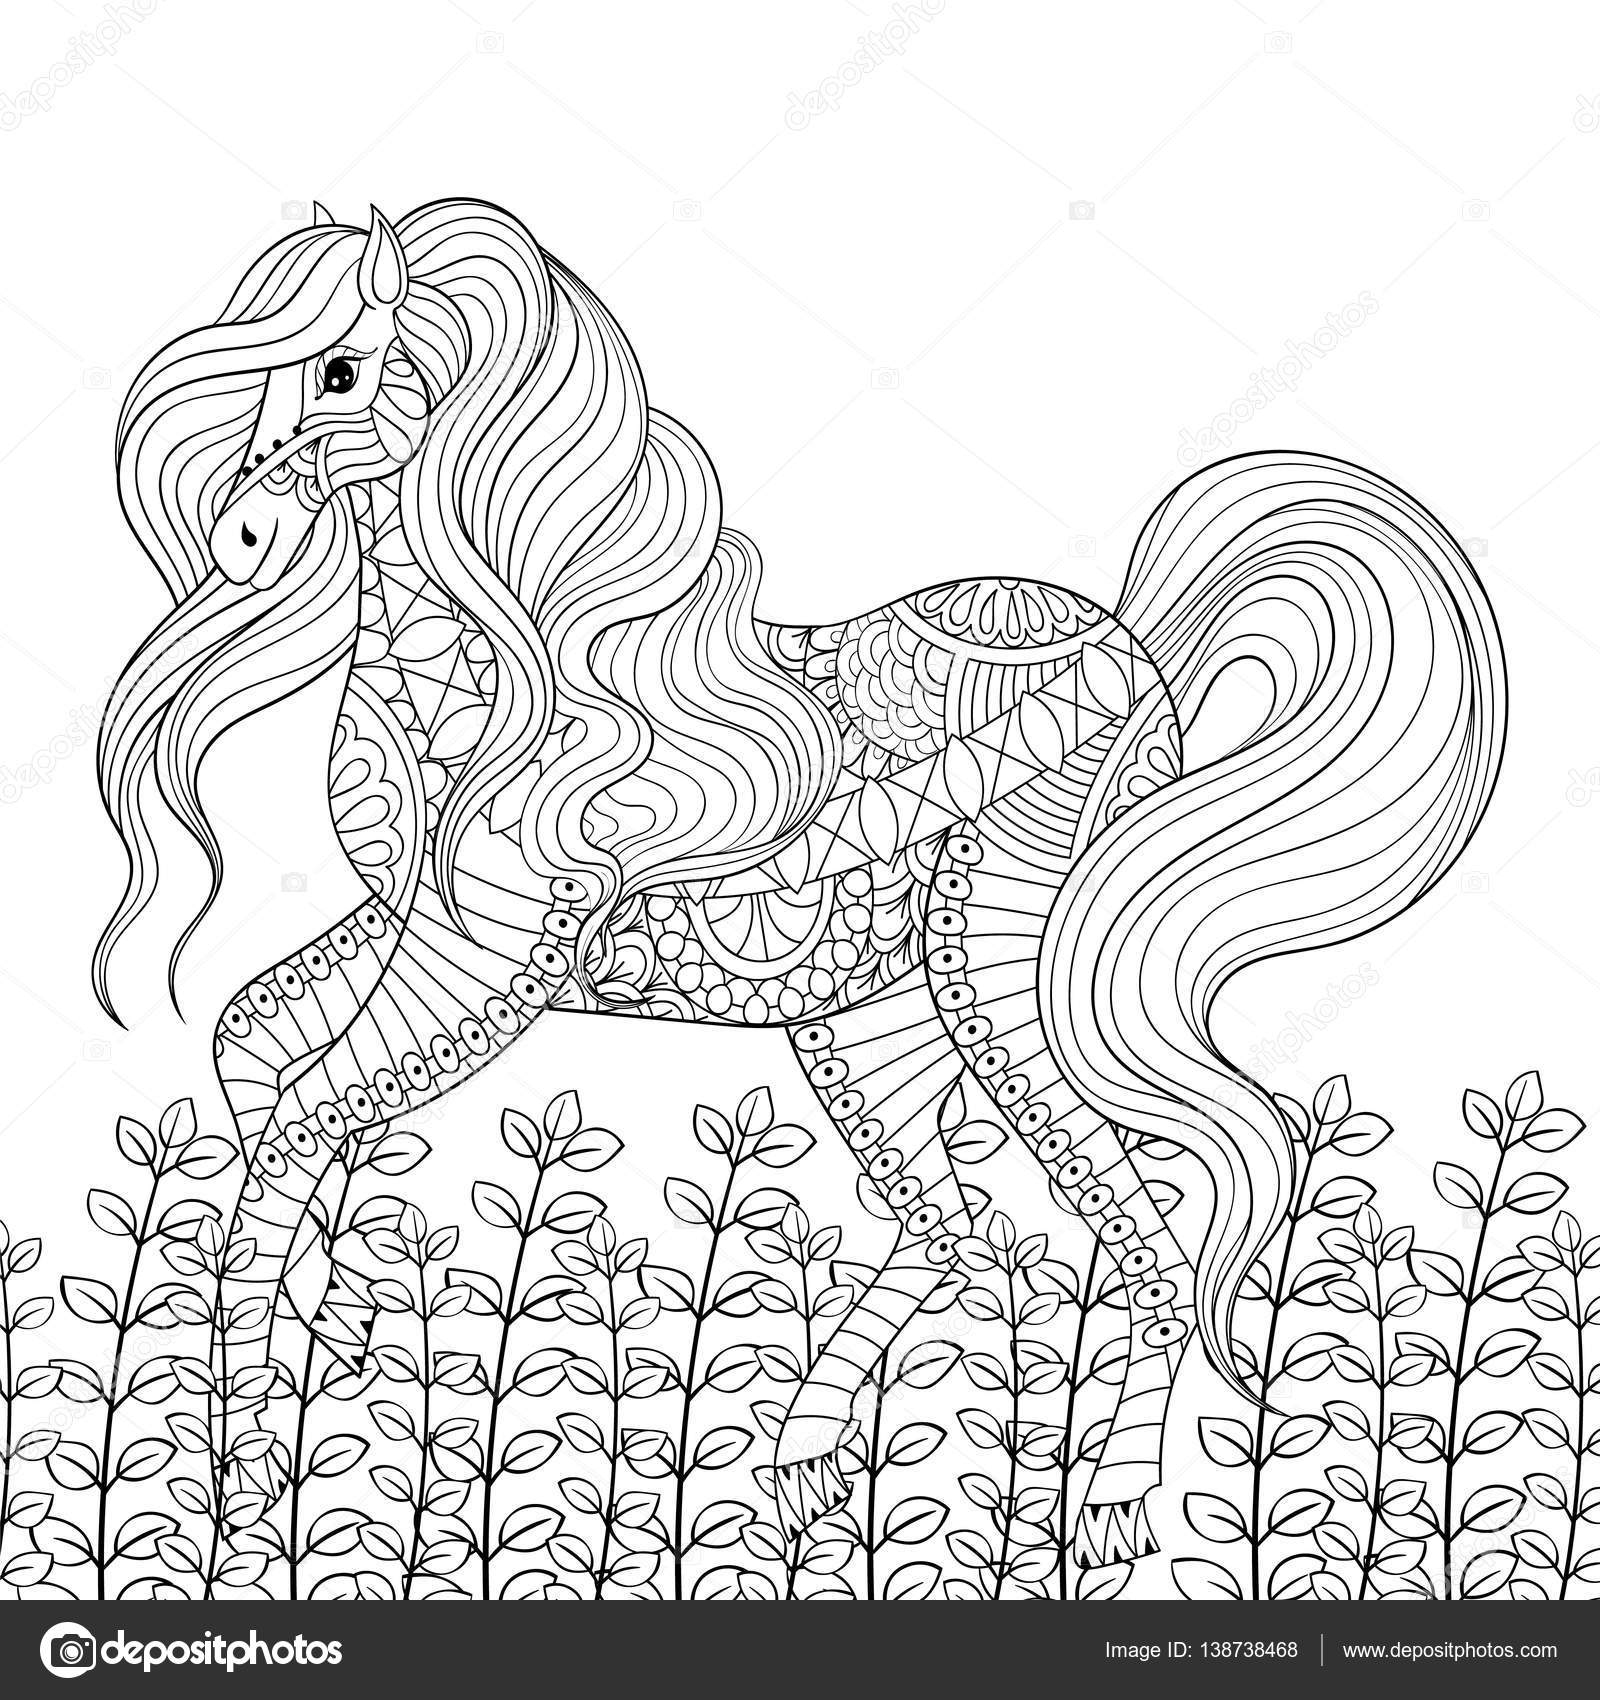 Adulte Anti Stress Coloriage De Cheval De Course Dessinés à La Main